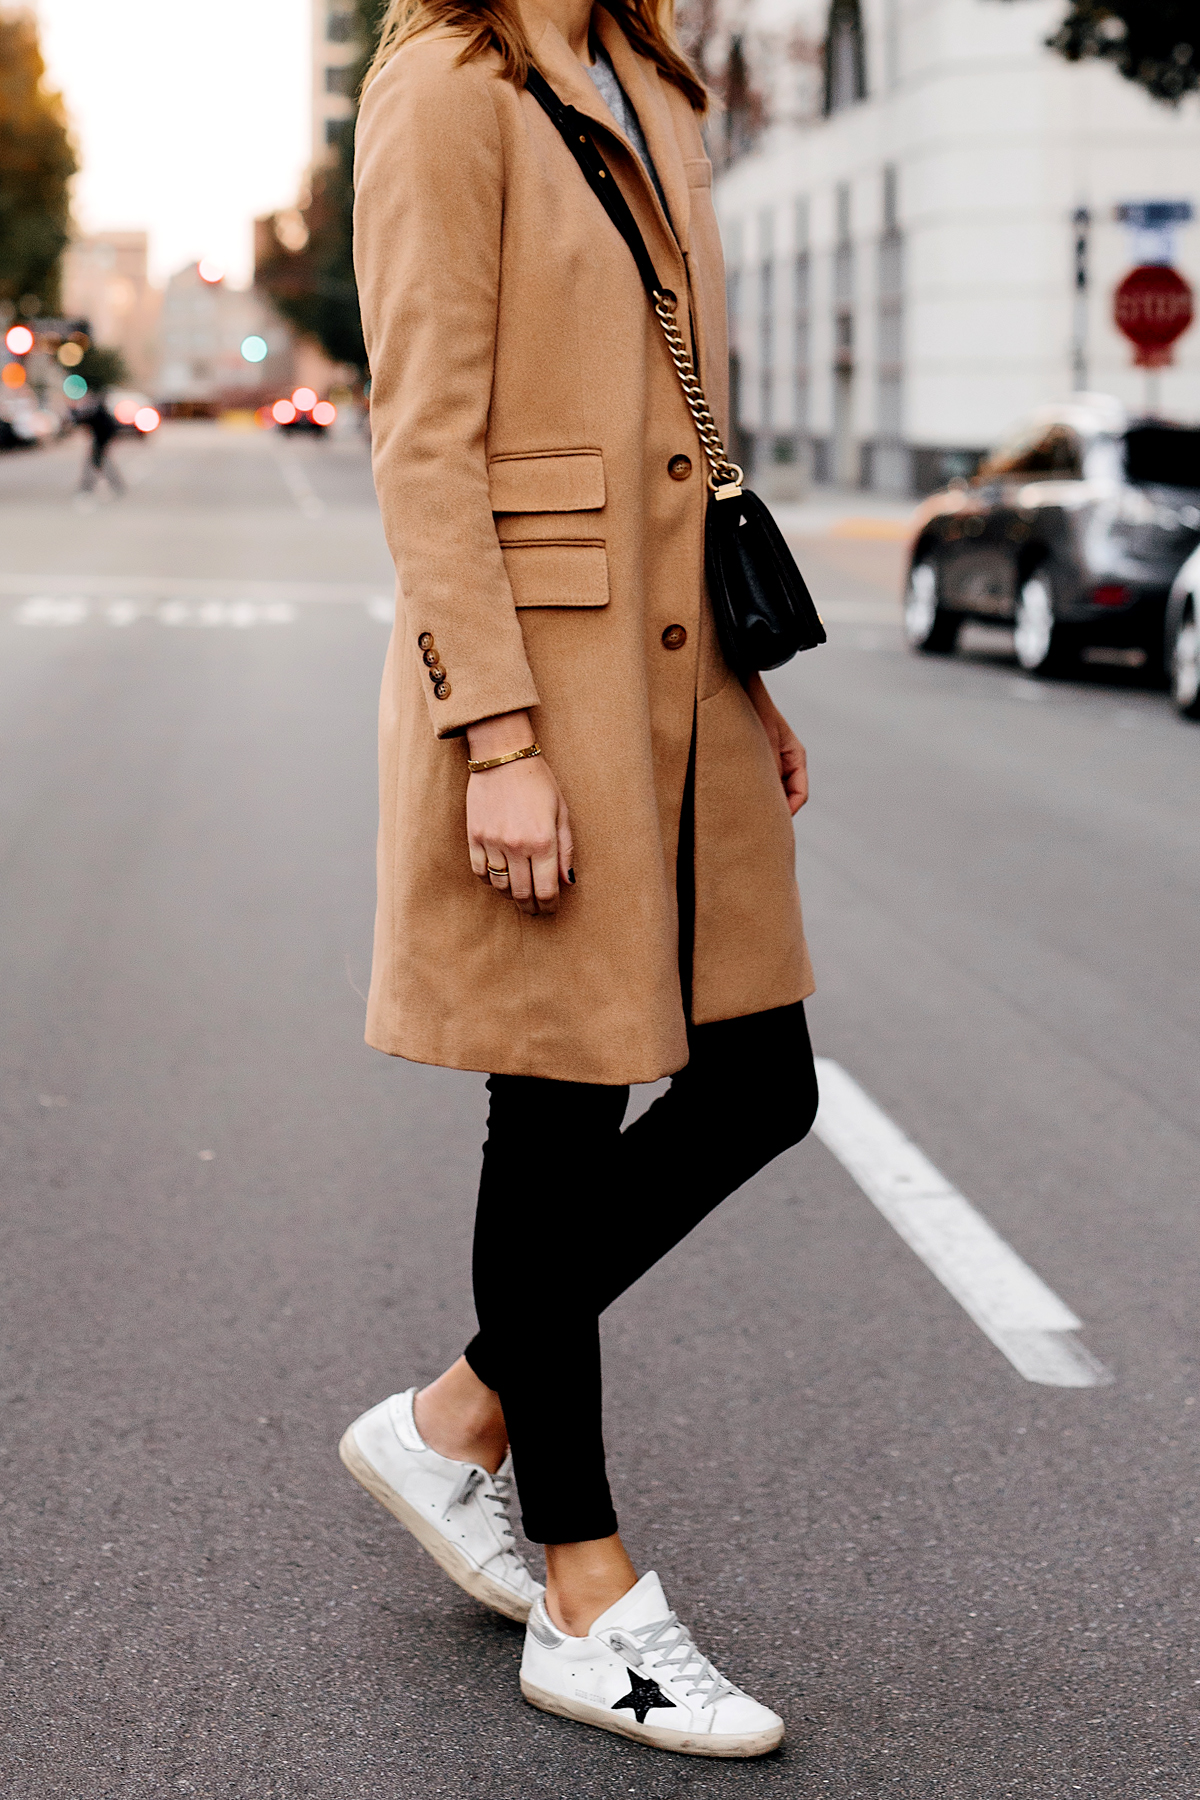 Woman Wearing Camel Coat Black Skinny Jeans Golden Goose Sneakers Outfit Fashion Jackson San Diego Fashion Blogger Street Style